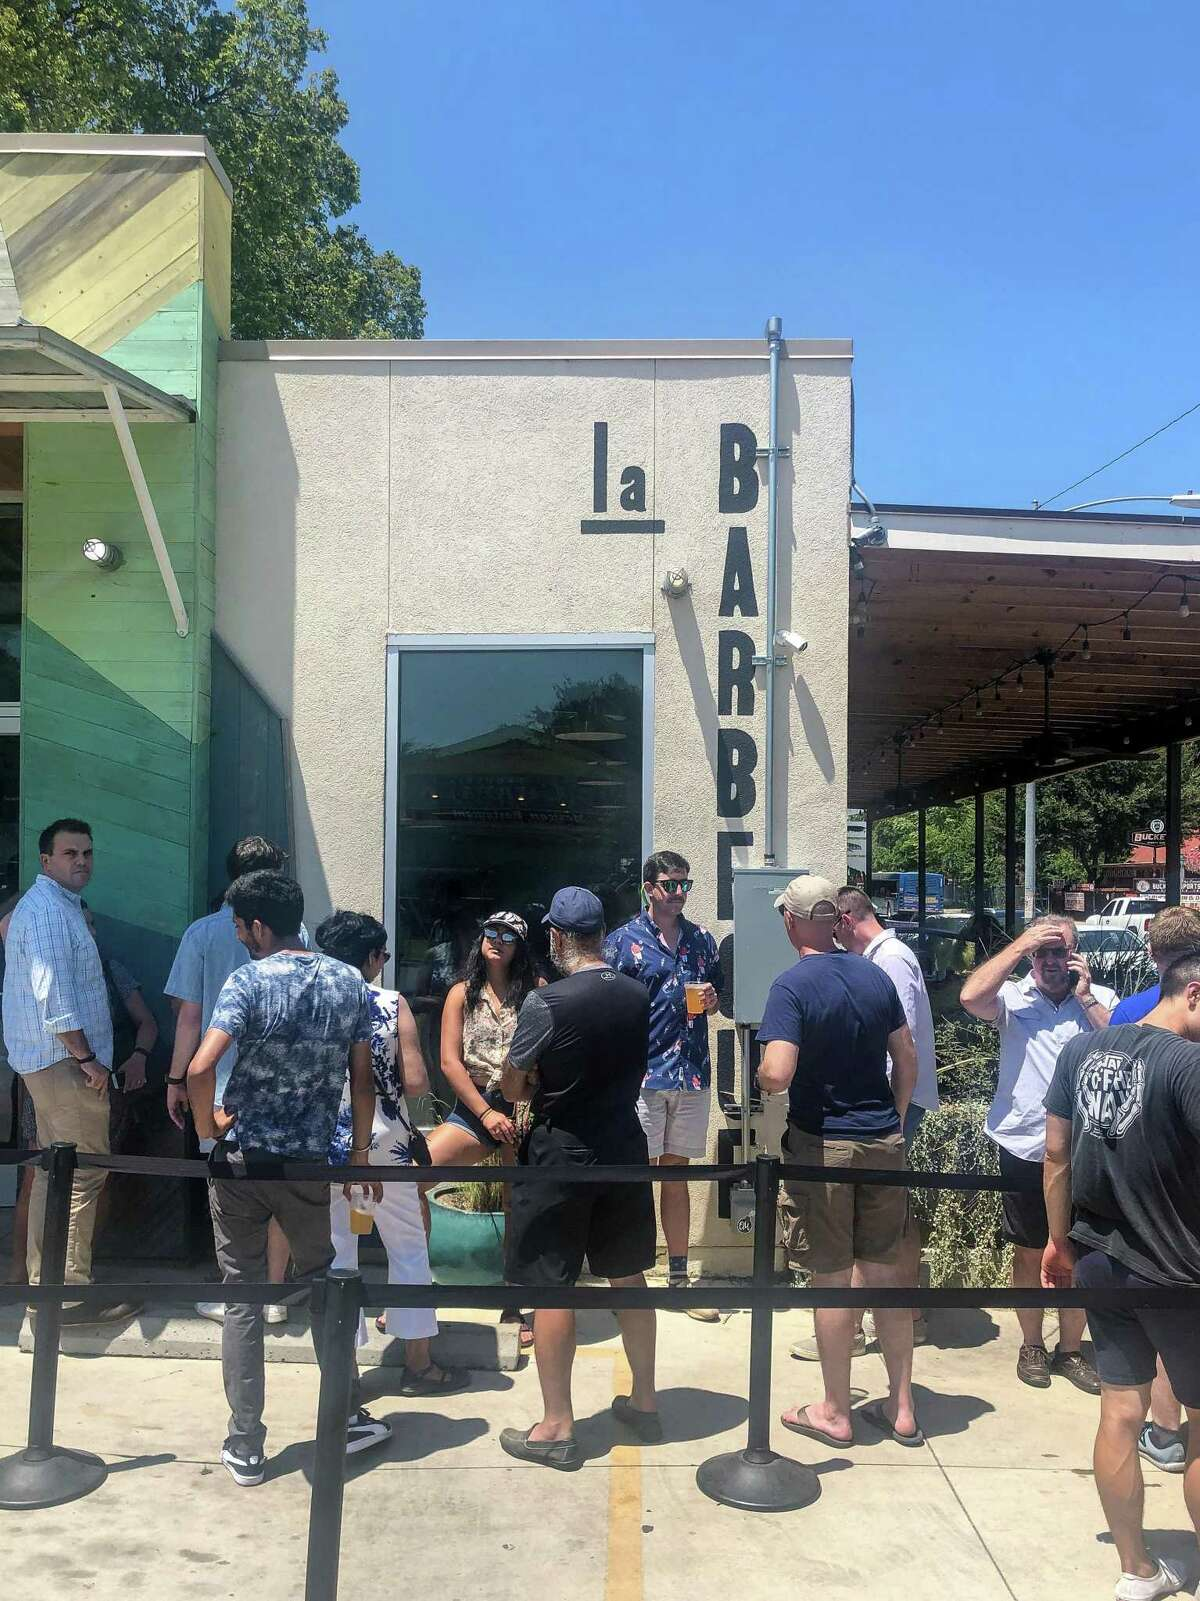 La Barbecue at Quickie Pickie in Austin offers a modern take on the meat-market tradition.